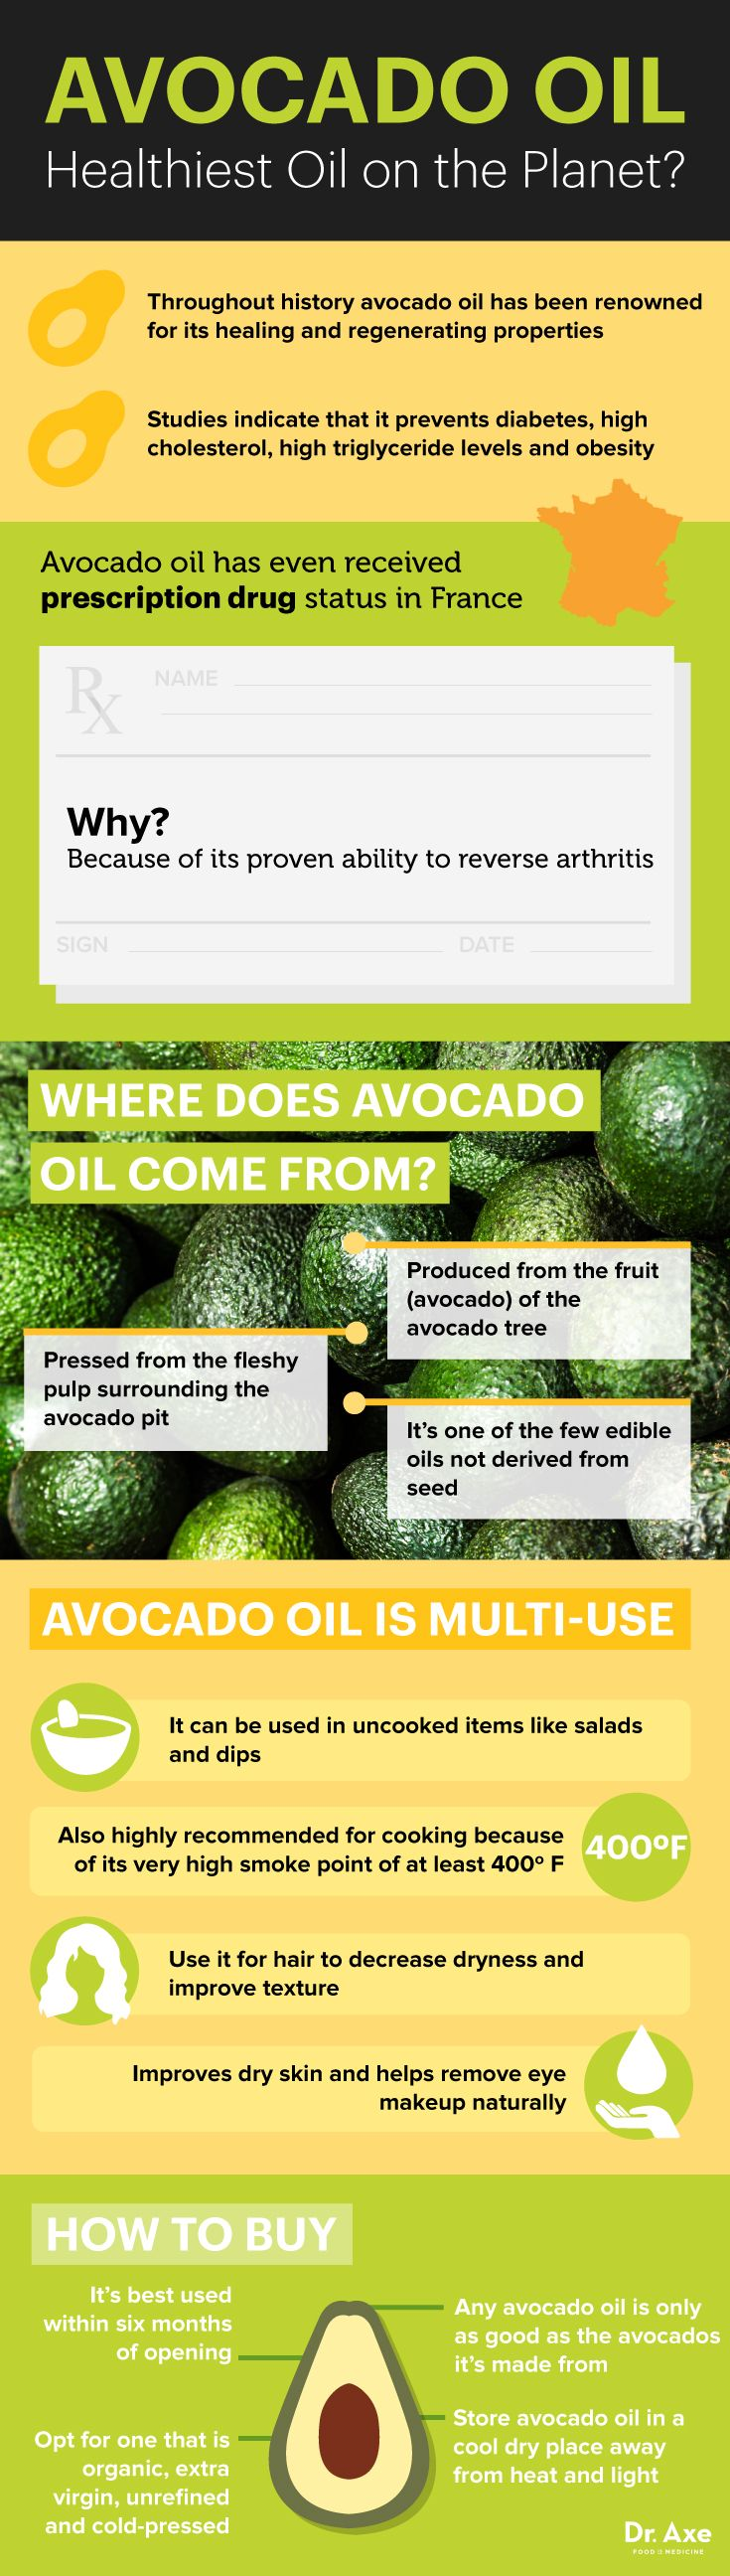 Avocado Oil: The Healthiest New Oil - Dr. Axe